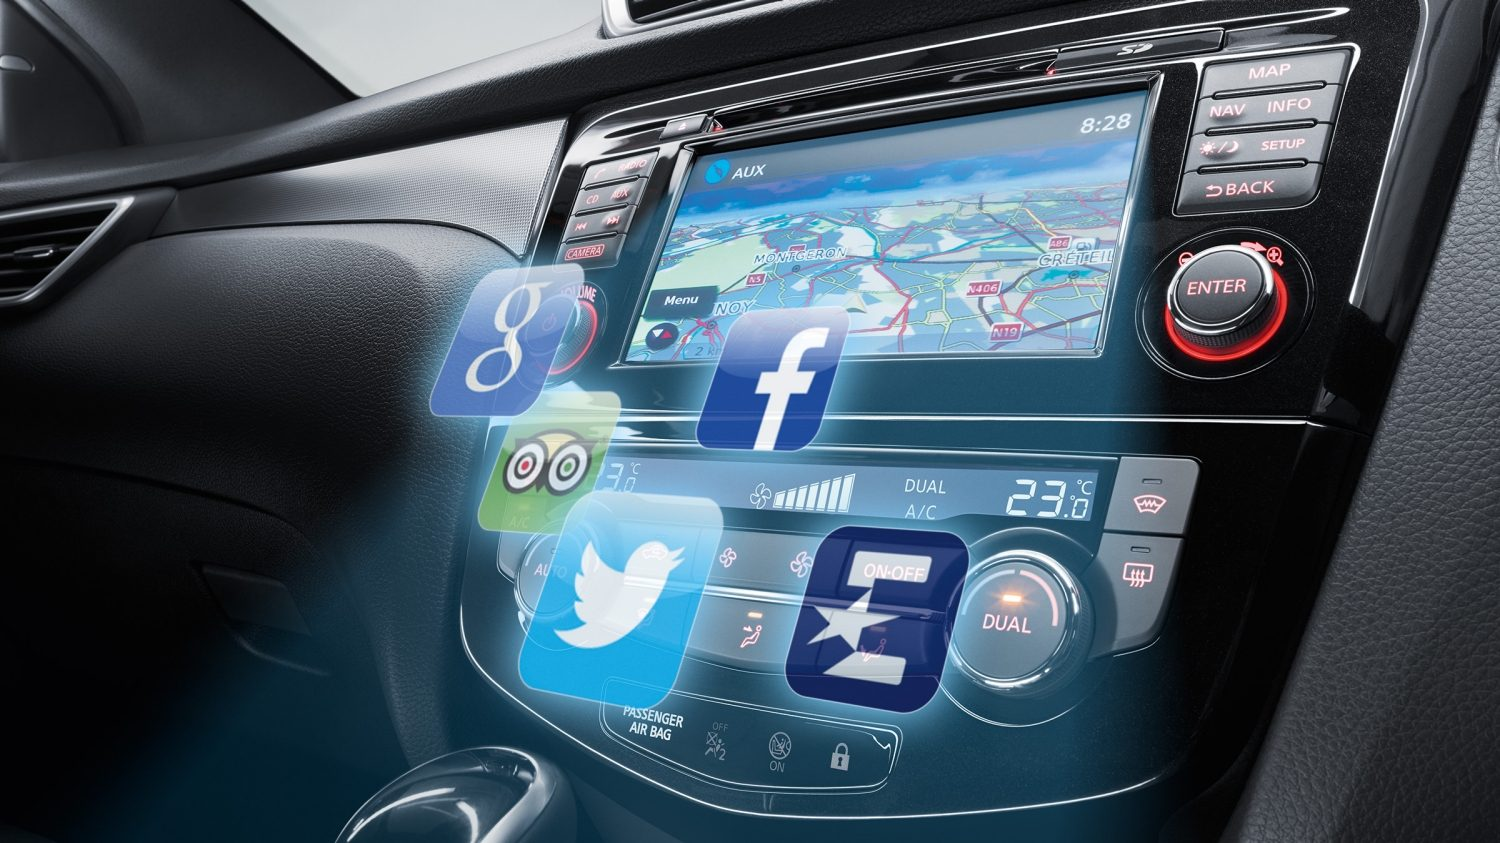 Qashqai NissanConnect console with app icons